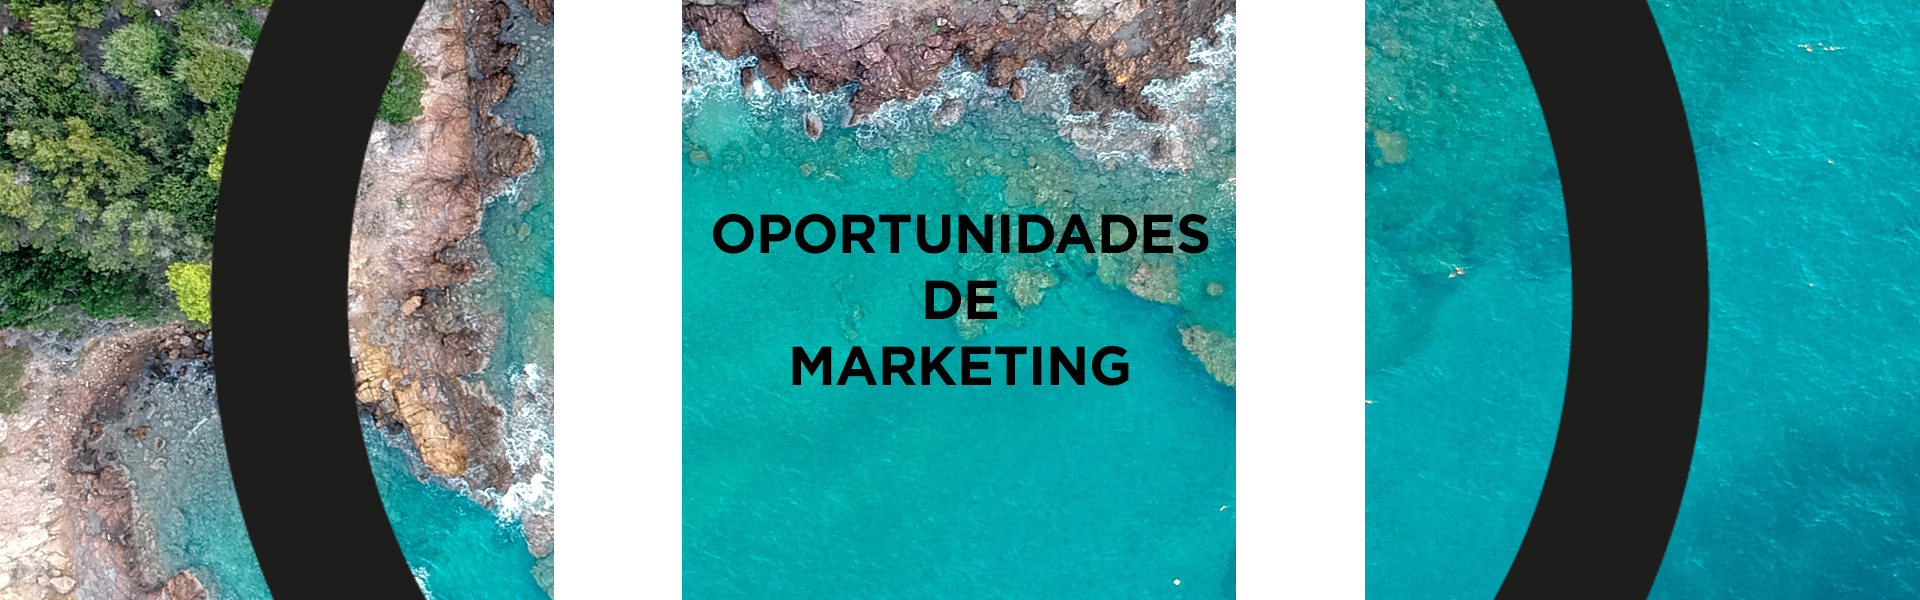 Oportunidades de Marketing